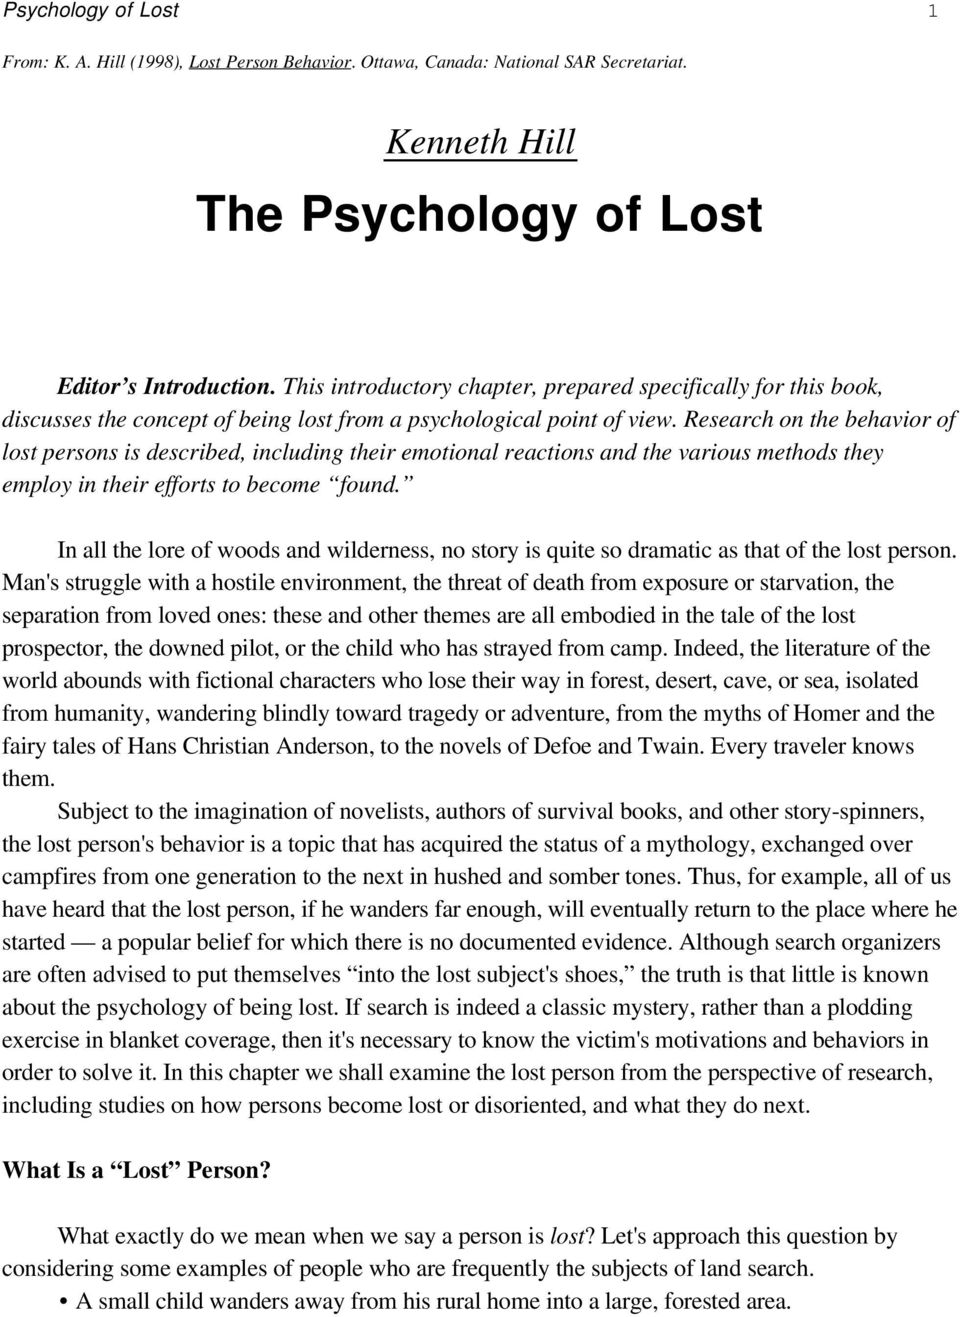 Research on the behavior of lost persons is described, including their emotional reactions and the various methods they employ in their efforts to become found.